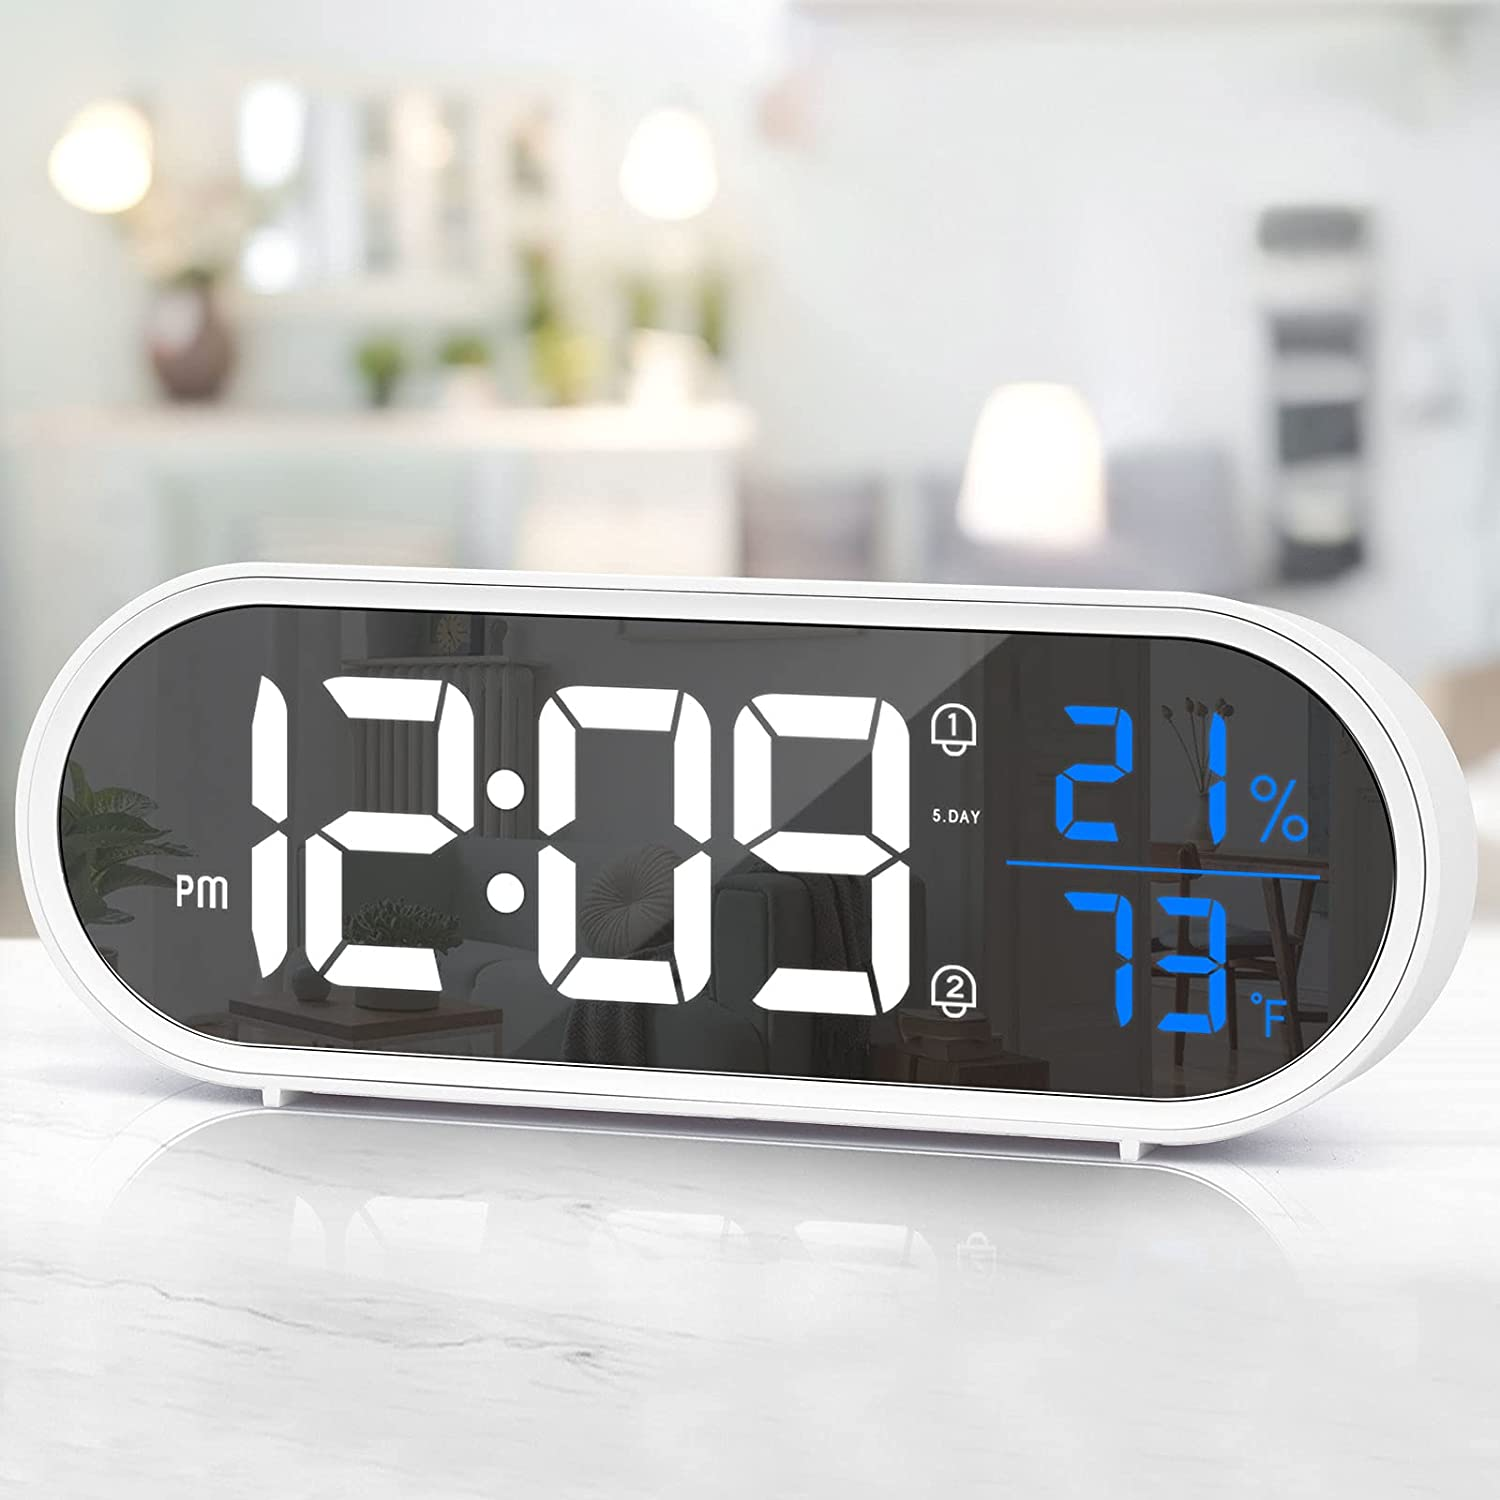 Digital Alarm Clock for Bedroom, LED Desk Clock Large Display, White Alarm Clock with USB Charger, Dual Alarm Clock with Temperature and Humidity, Snooze & Weekend Mode